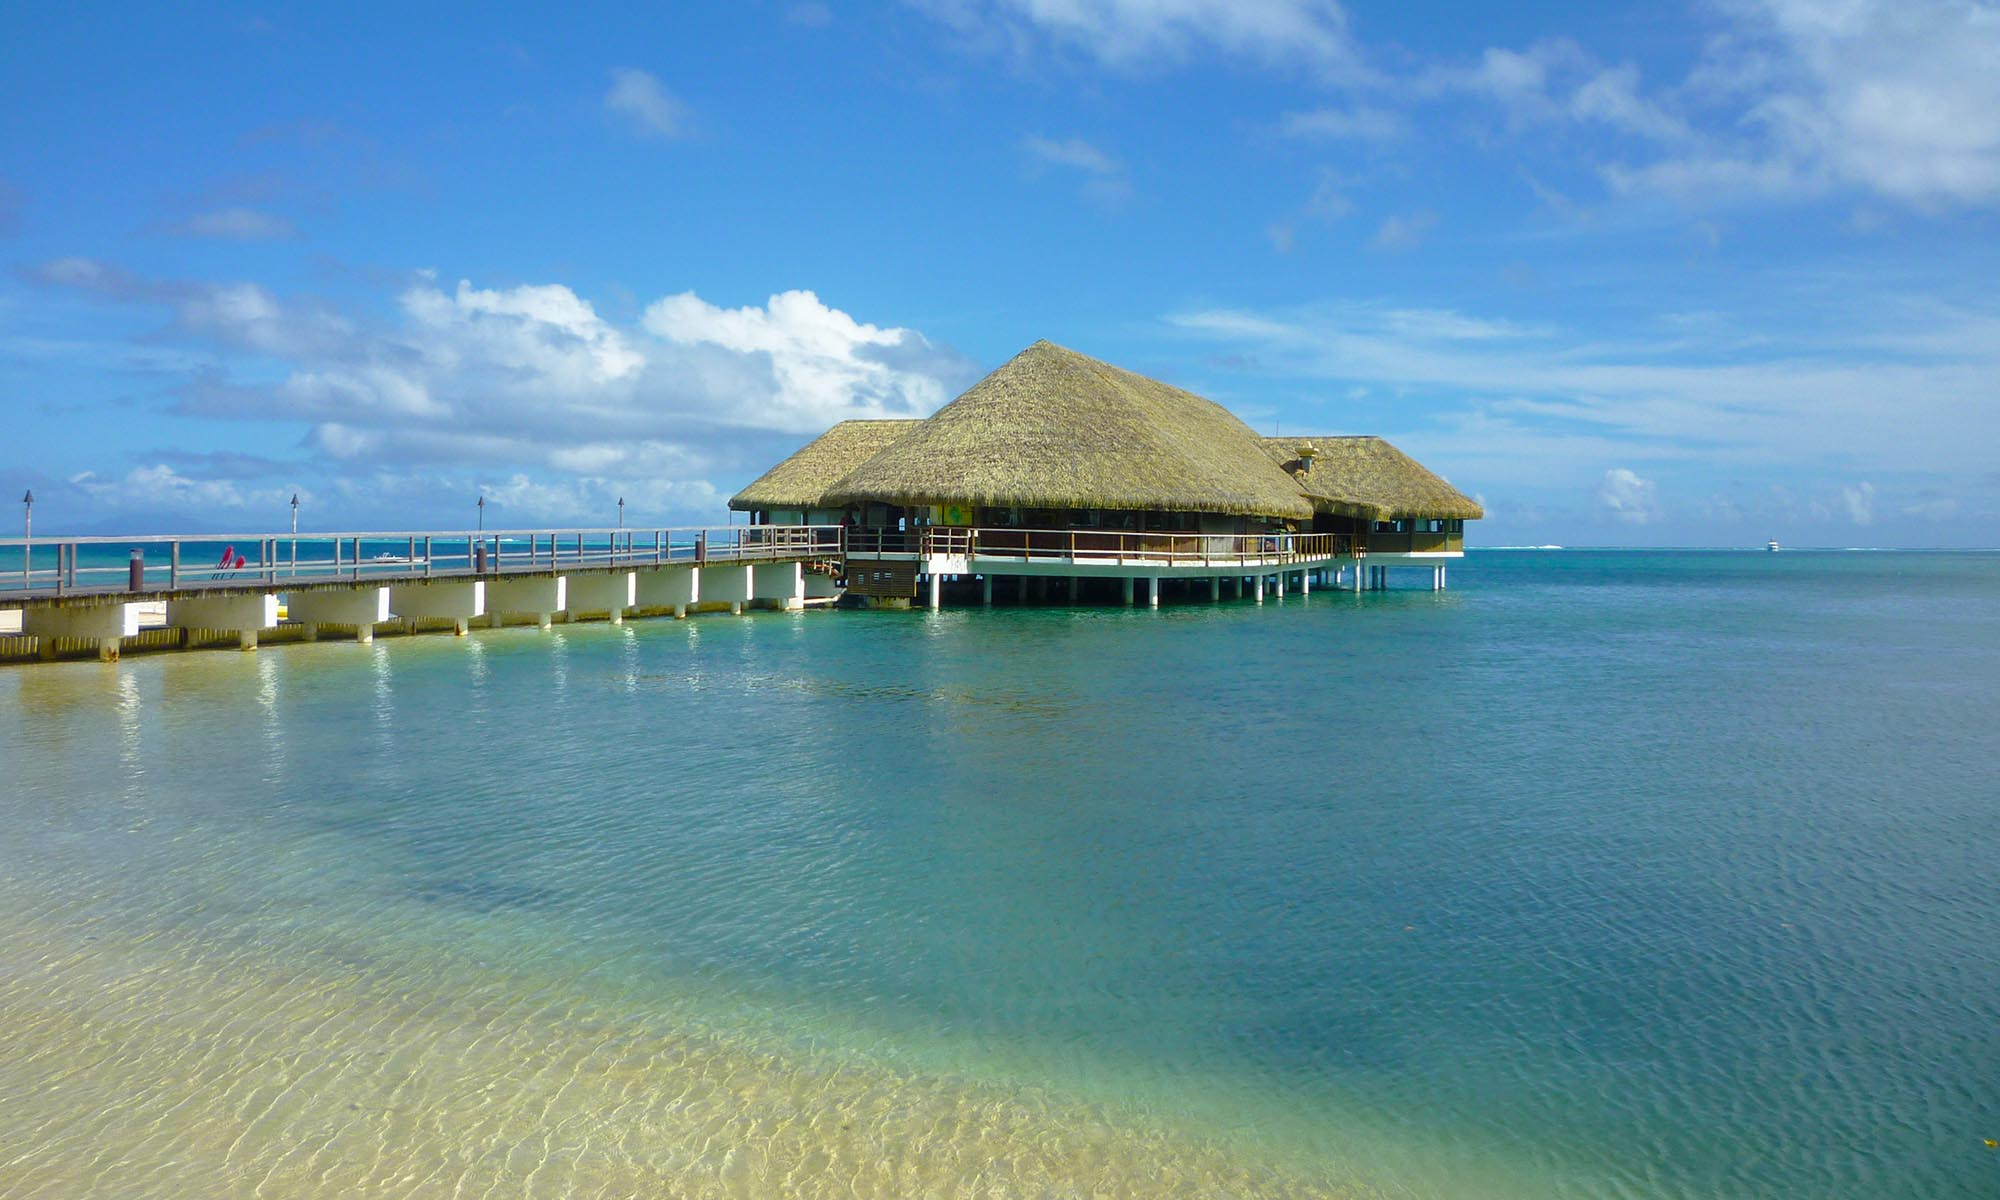 Royal Huahine, Le Arii Overwater Restaurant